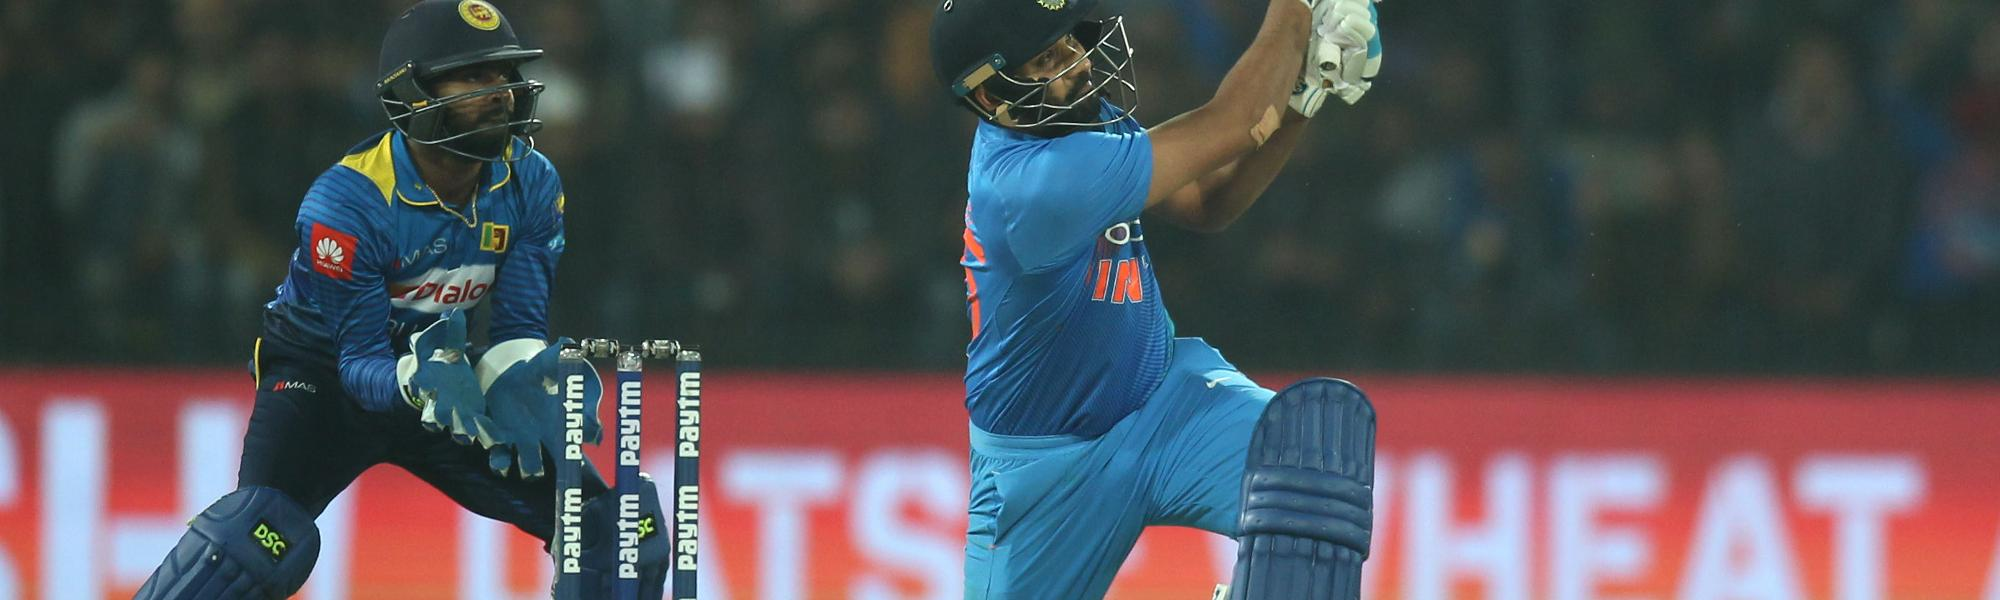 The Indian captain was in fine form smashing 12 boundaries and 10 sixes in his innings.